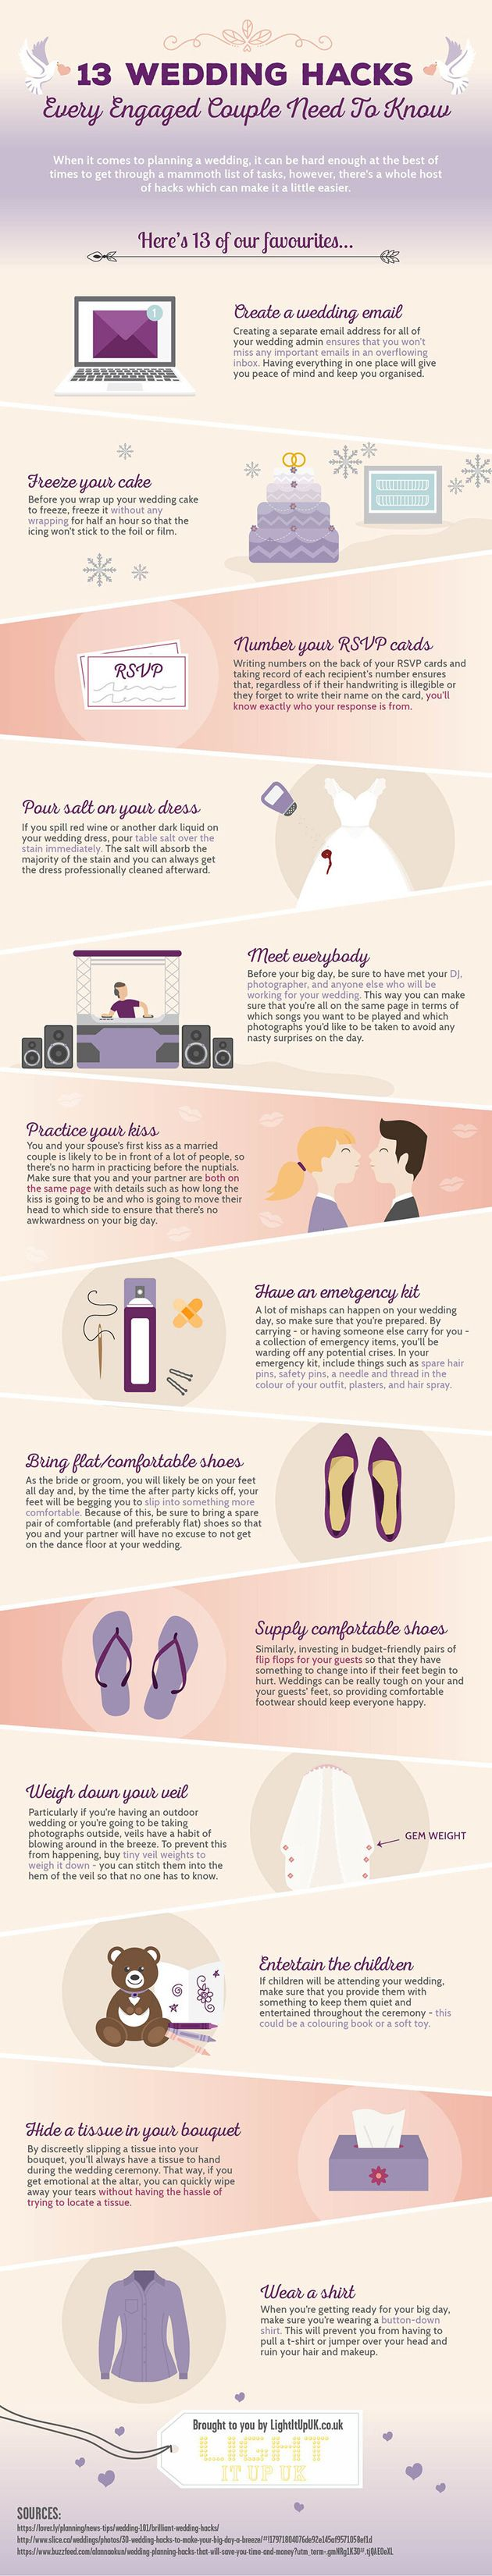 Nifty, Unique Wedding Planning Tips For The Newly